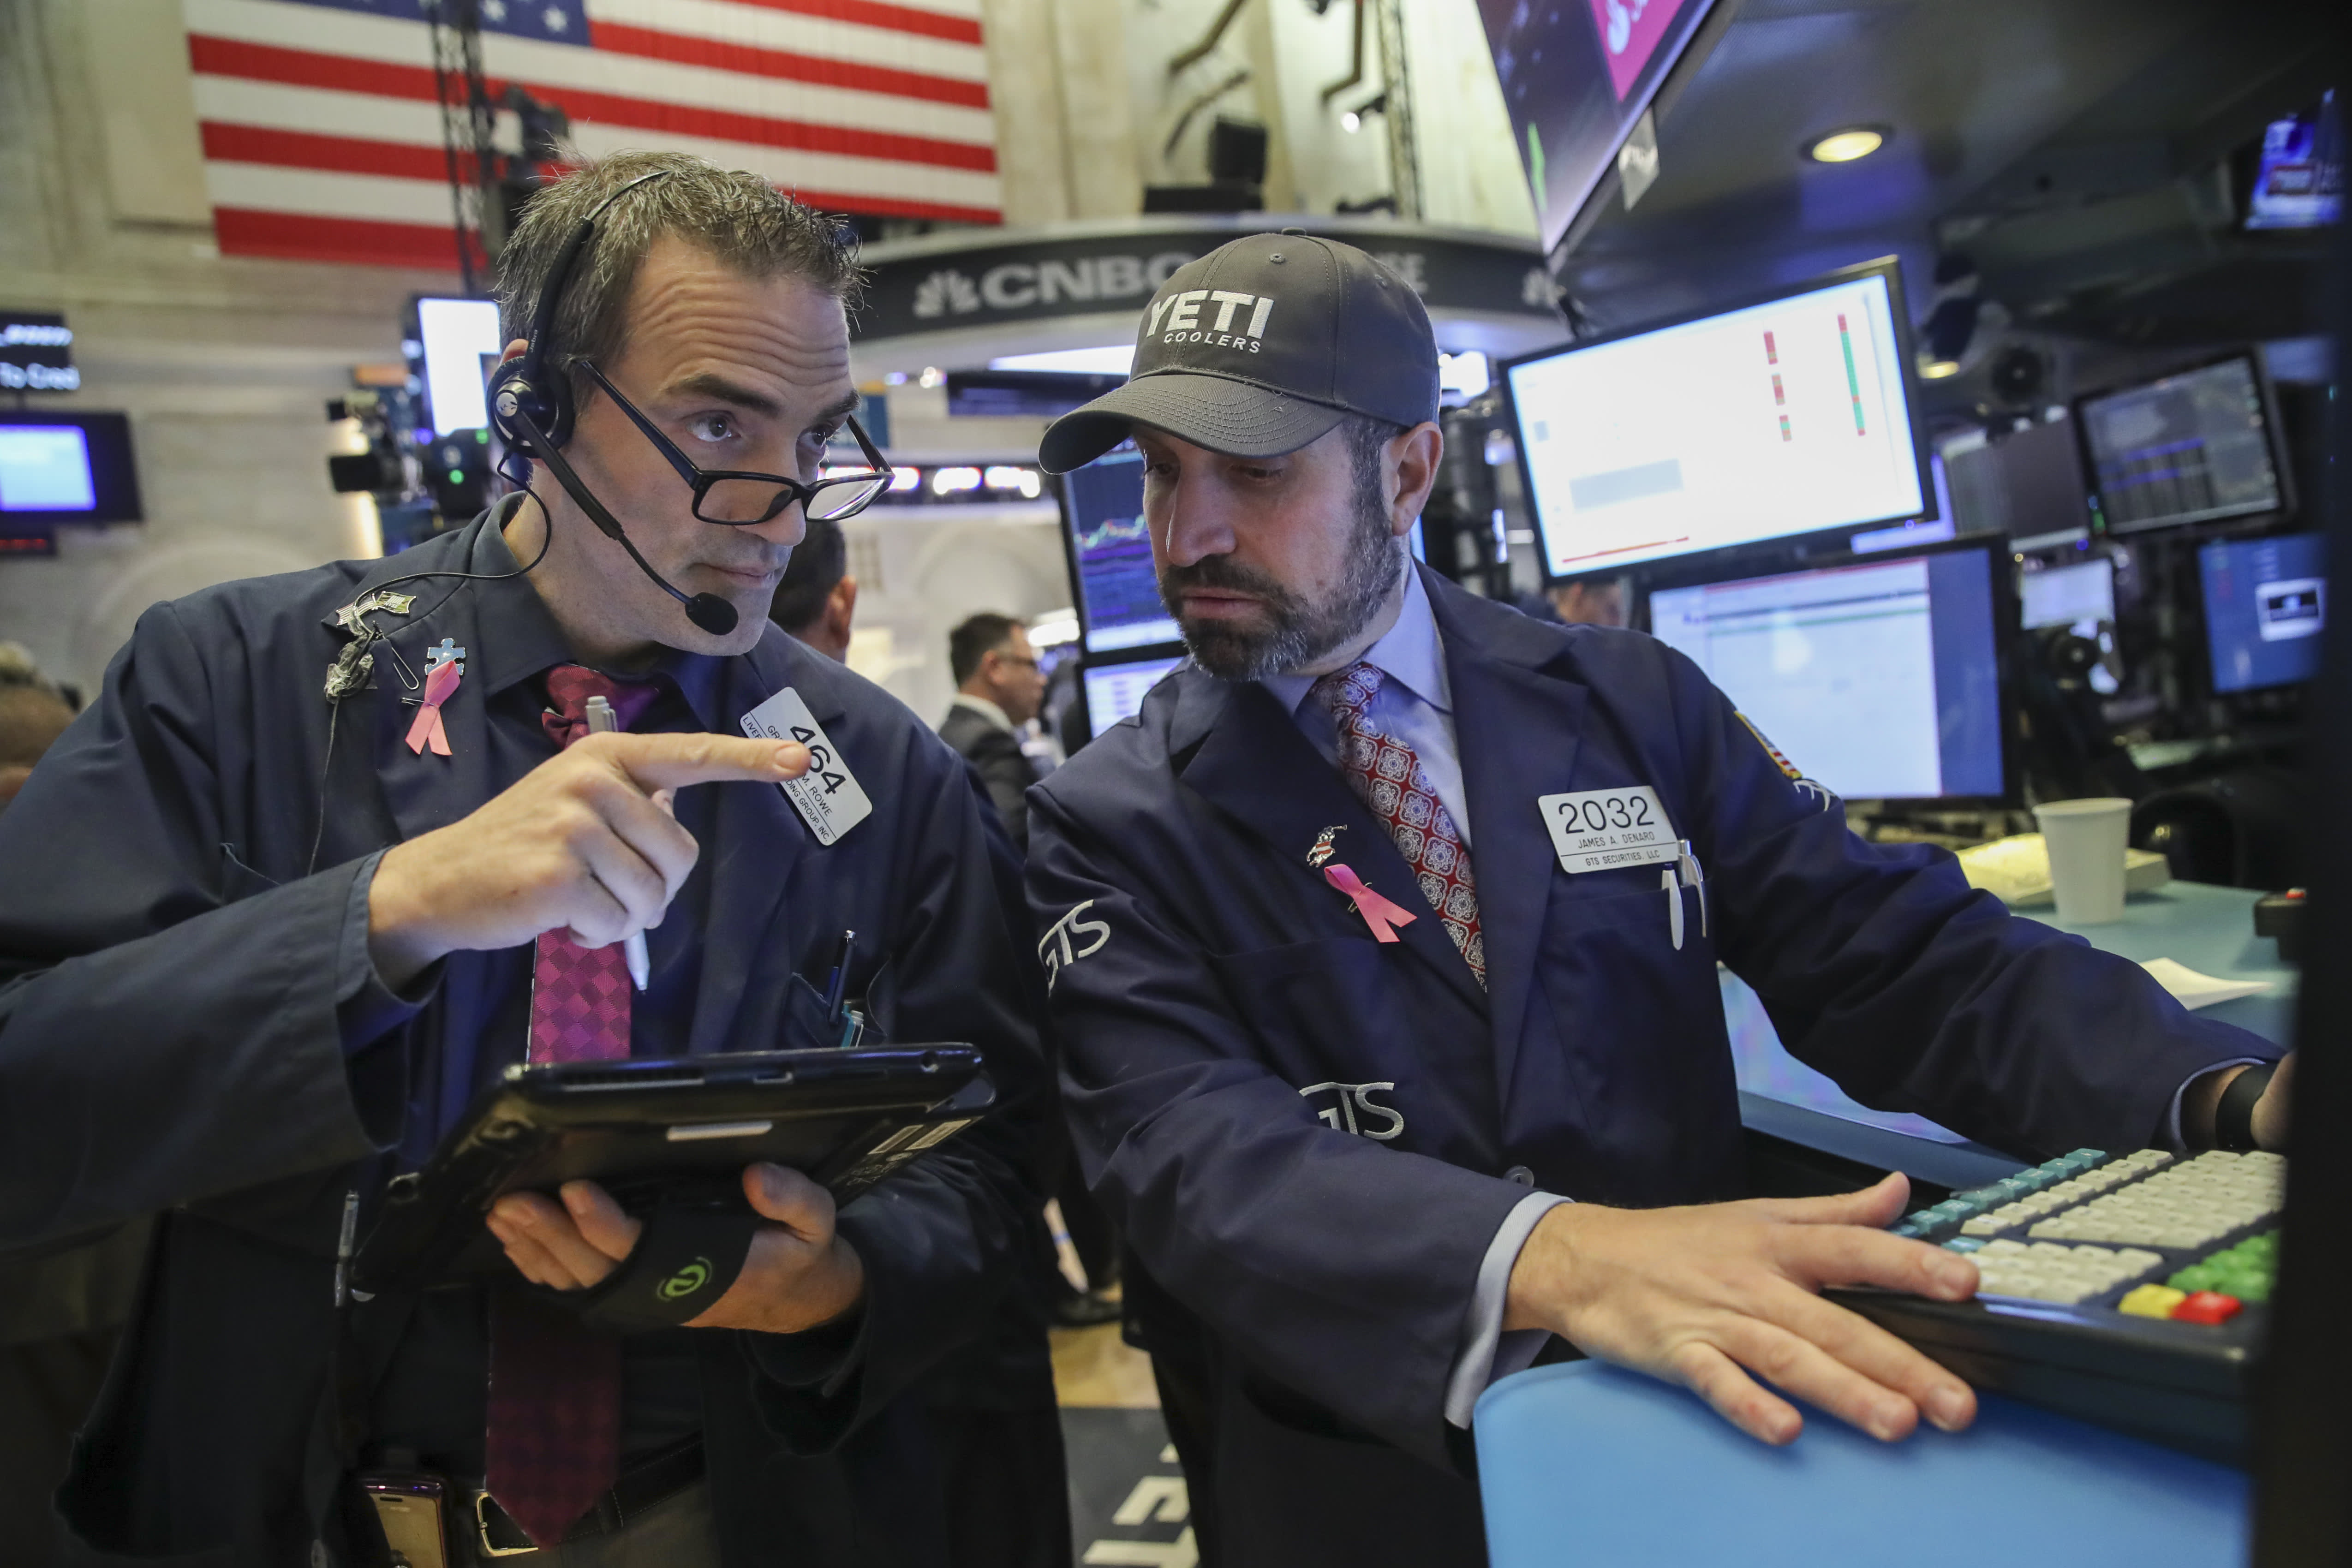 Stocks rise slightly, but trade and economy worries persist